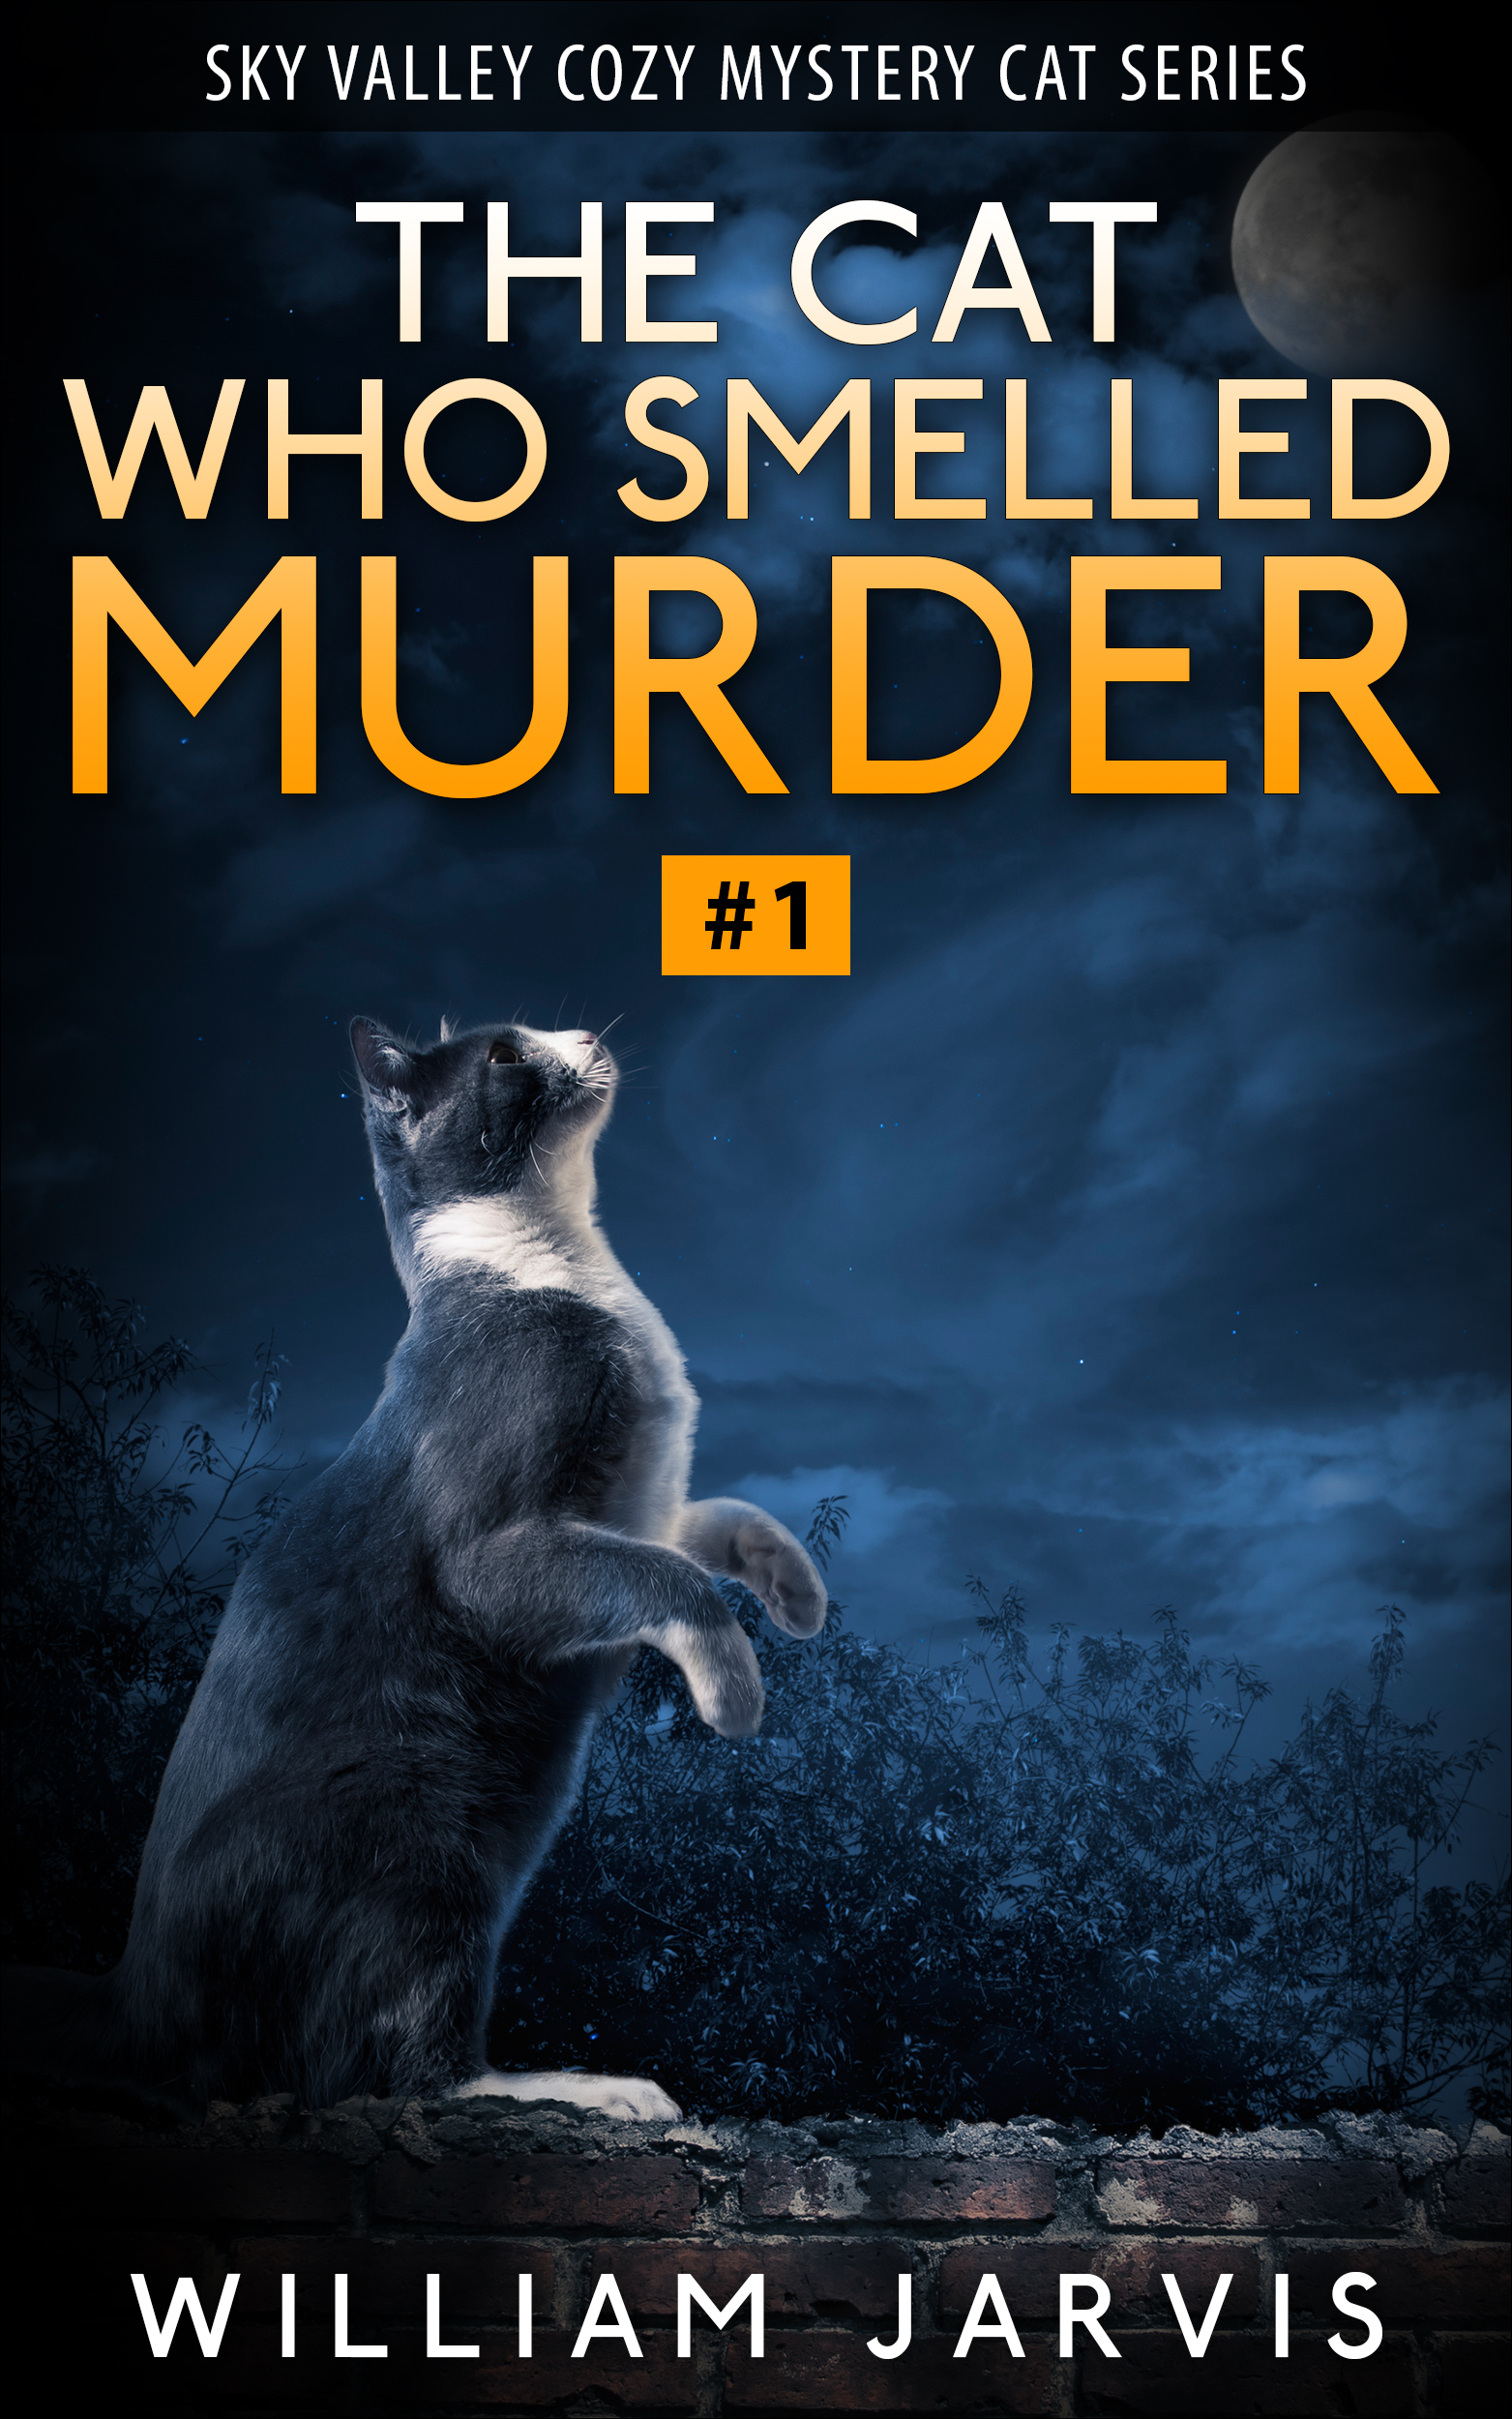 The cat who smelled murder #1